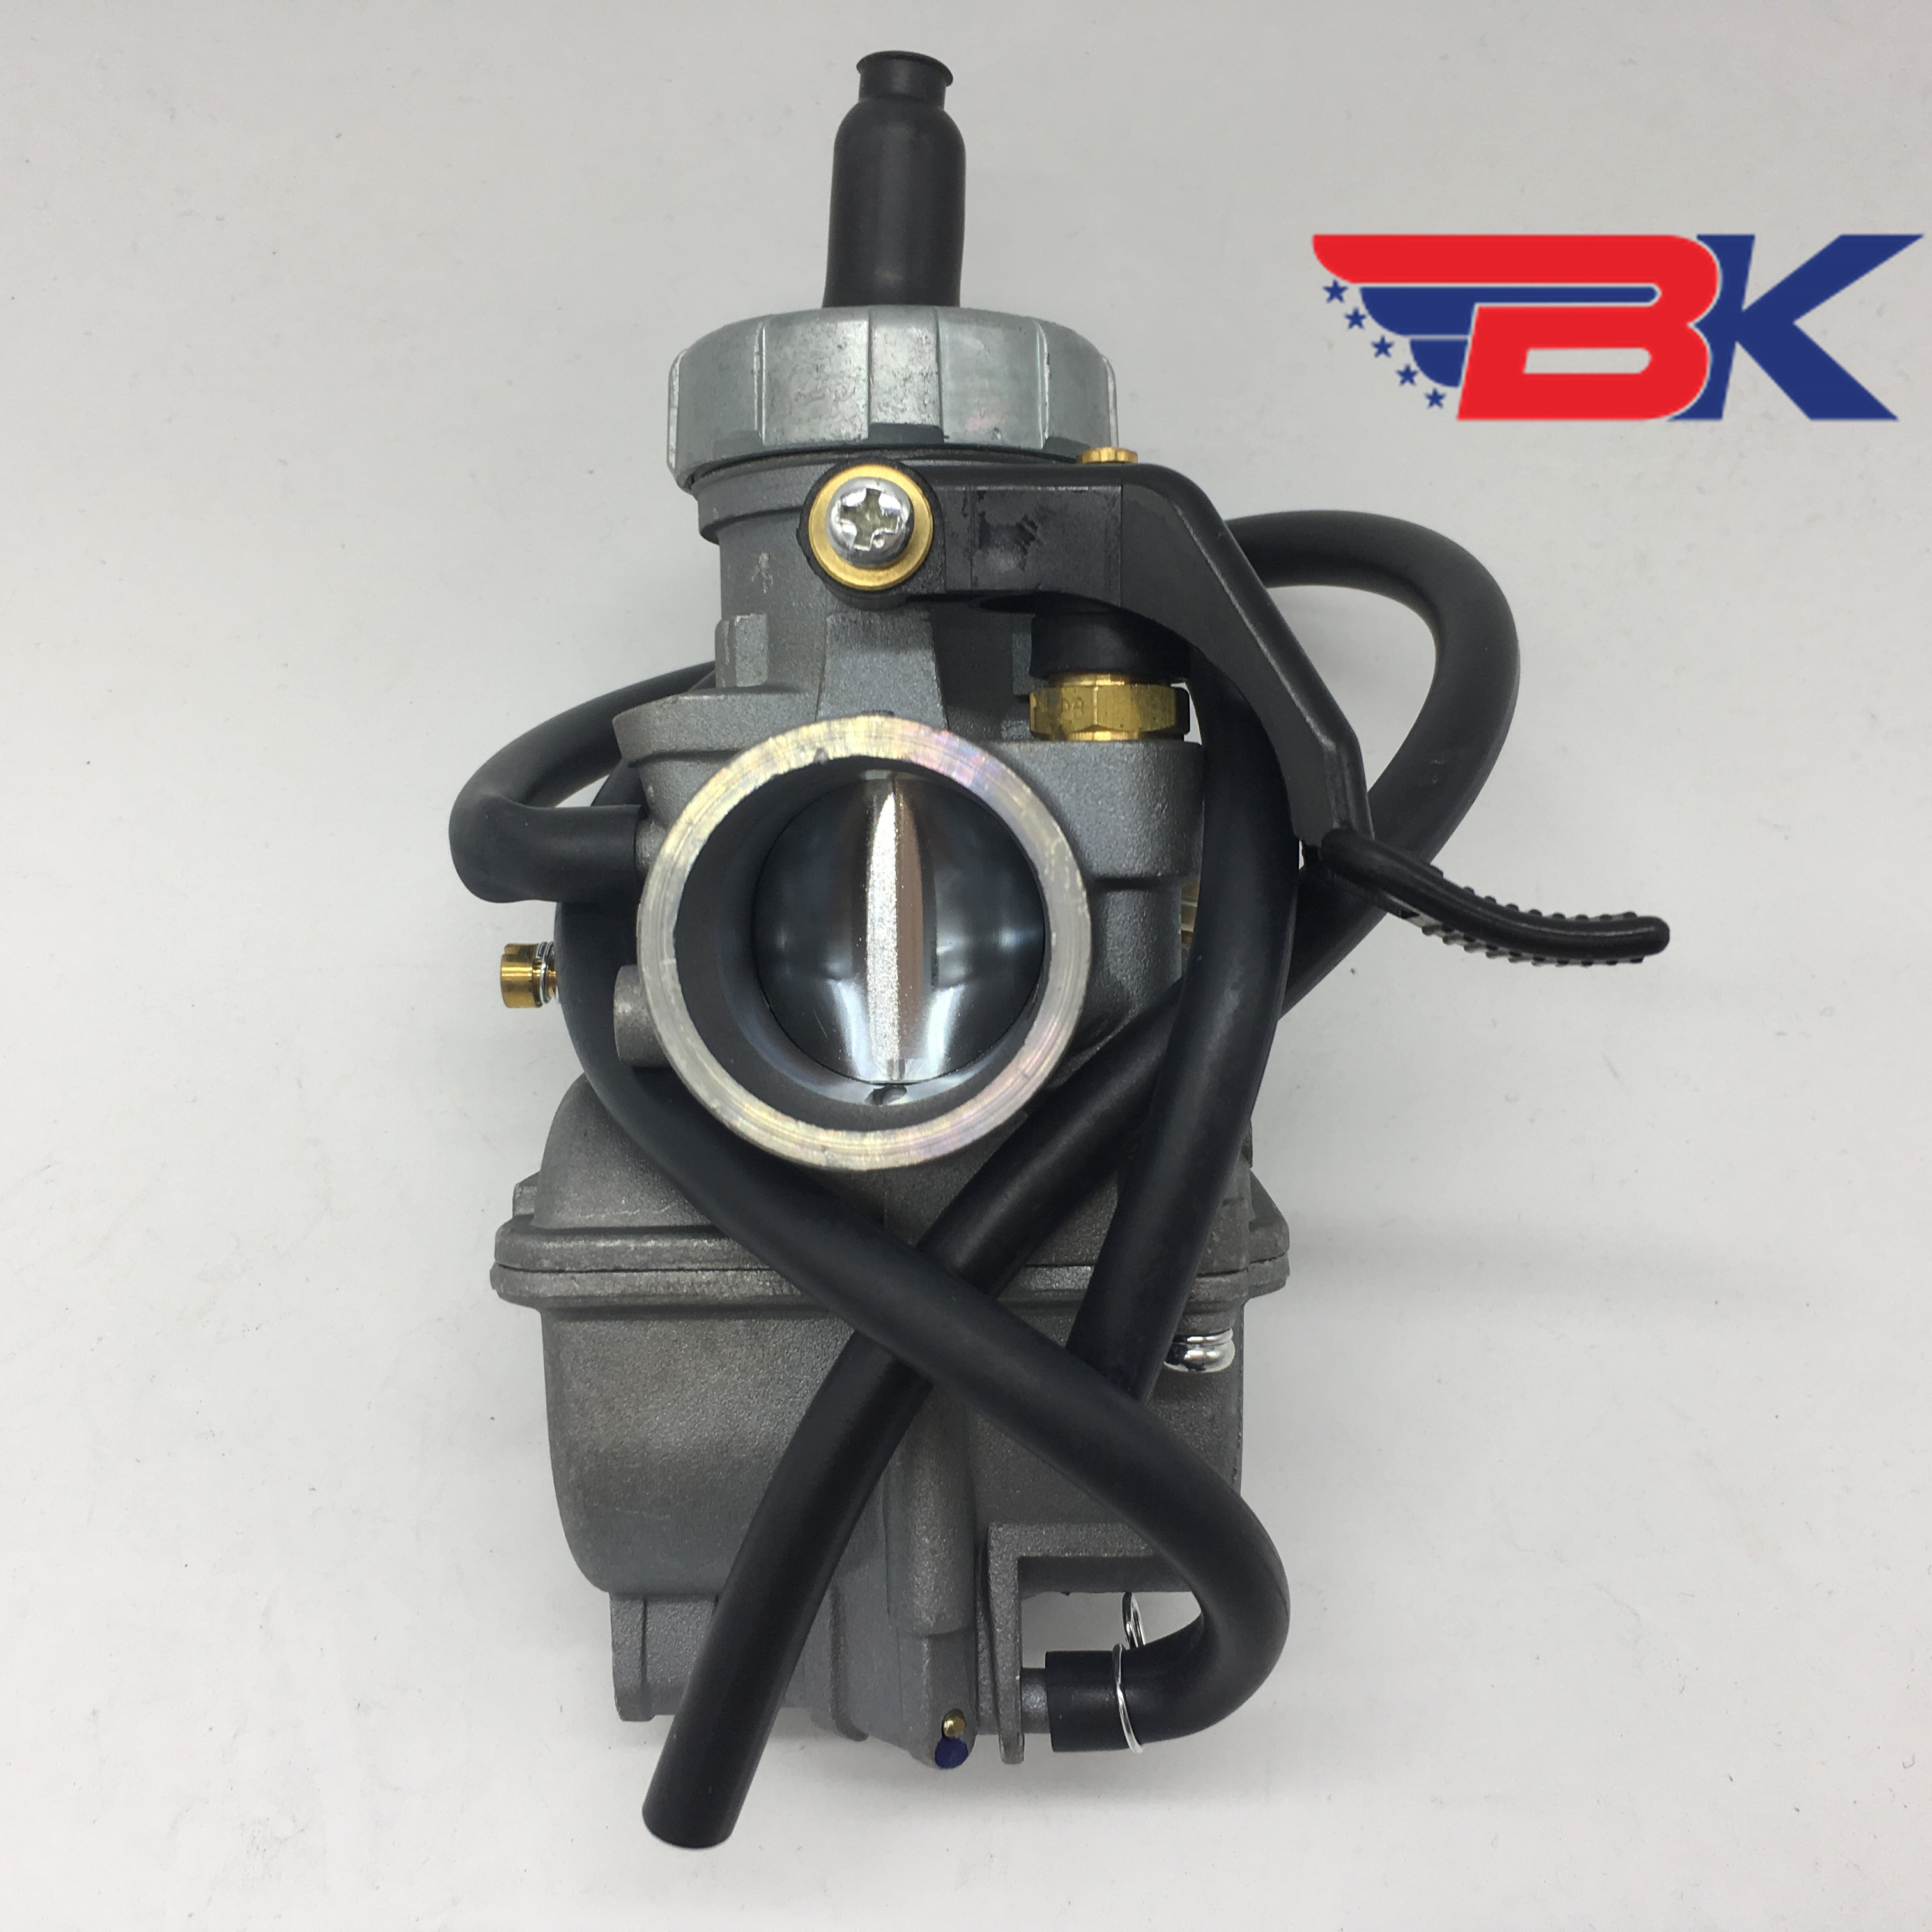 Automobiles & Motorcycles Carburettor For Jianshe 125 Yamaha Ybr125 Gs125 En125 125cc Motorcycle Atv Carb Soft And Light Atv,rv,boat & Other Vehicle